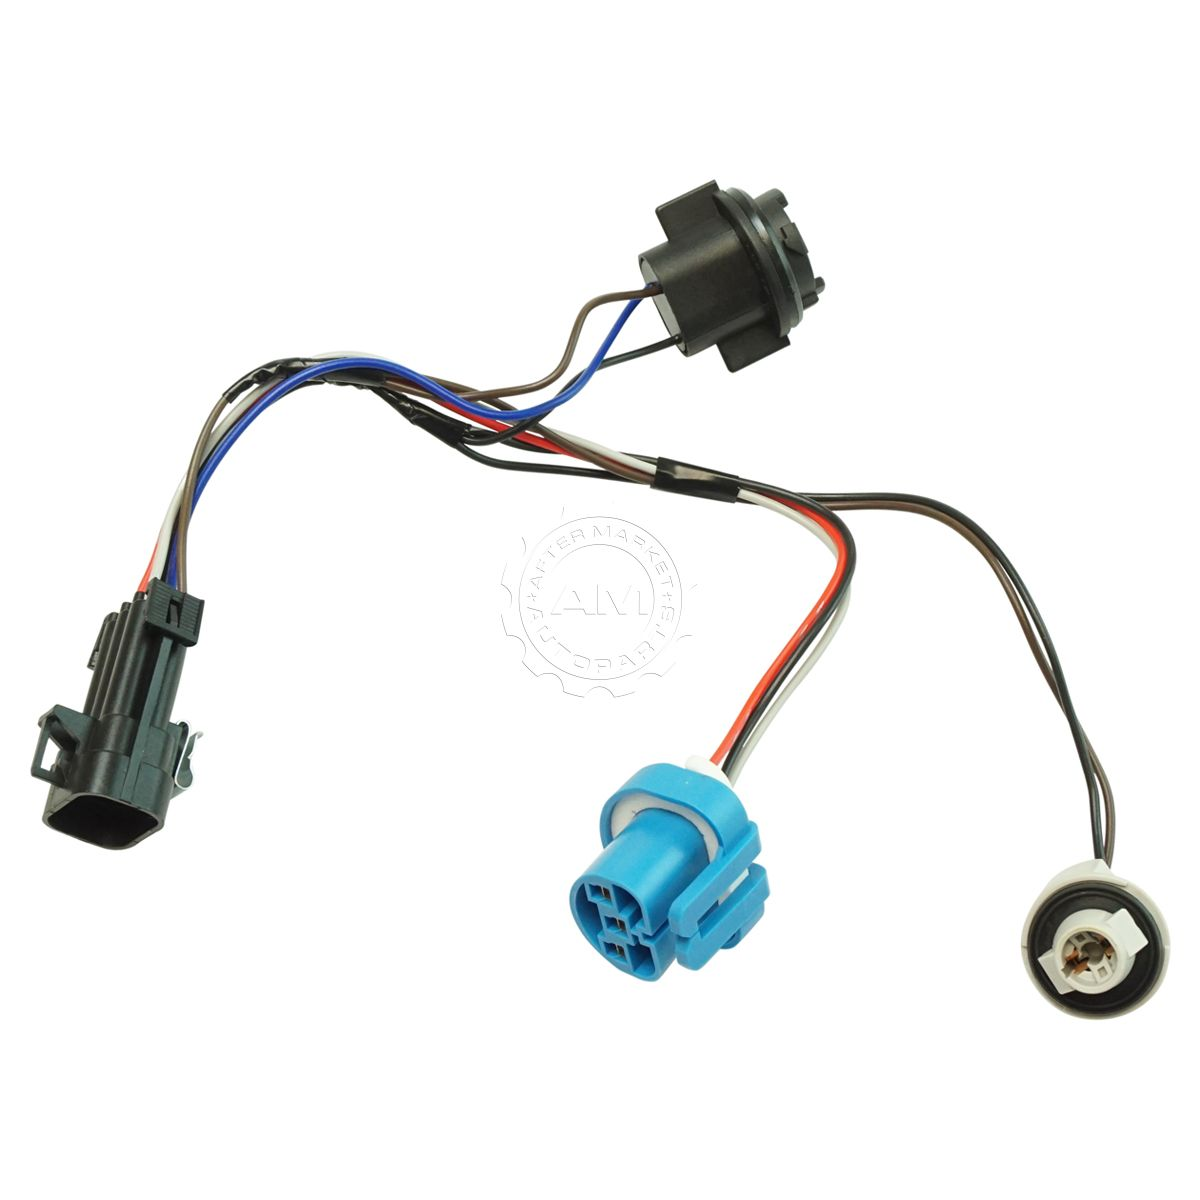 dorman headlight wiring harness or side for chevy cobalt pontiac g5 rh ebay com wiring harness for pontiac g6 headlight wiring harness for pontiac g6 headlight